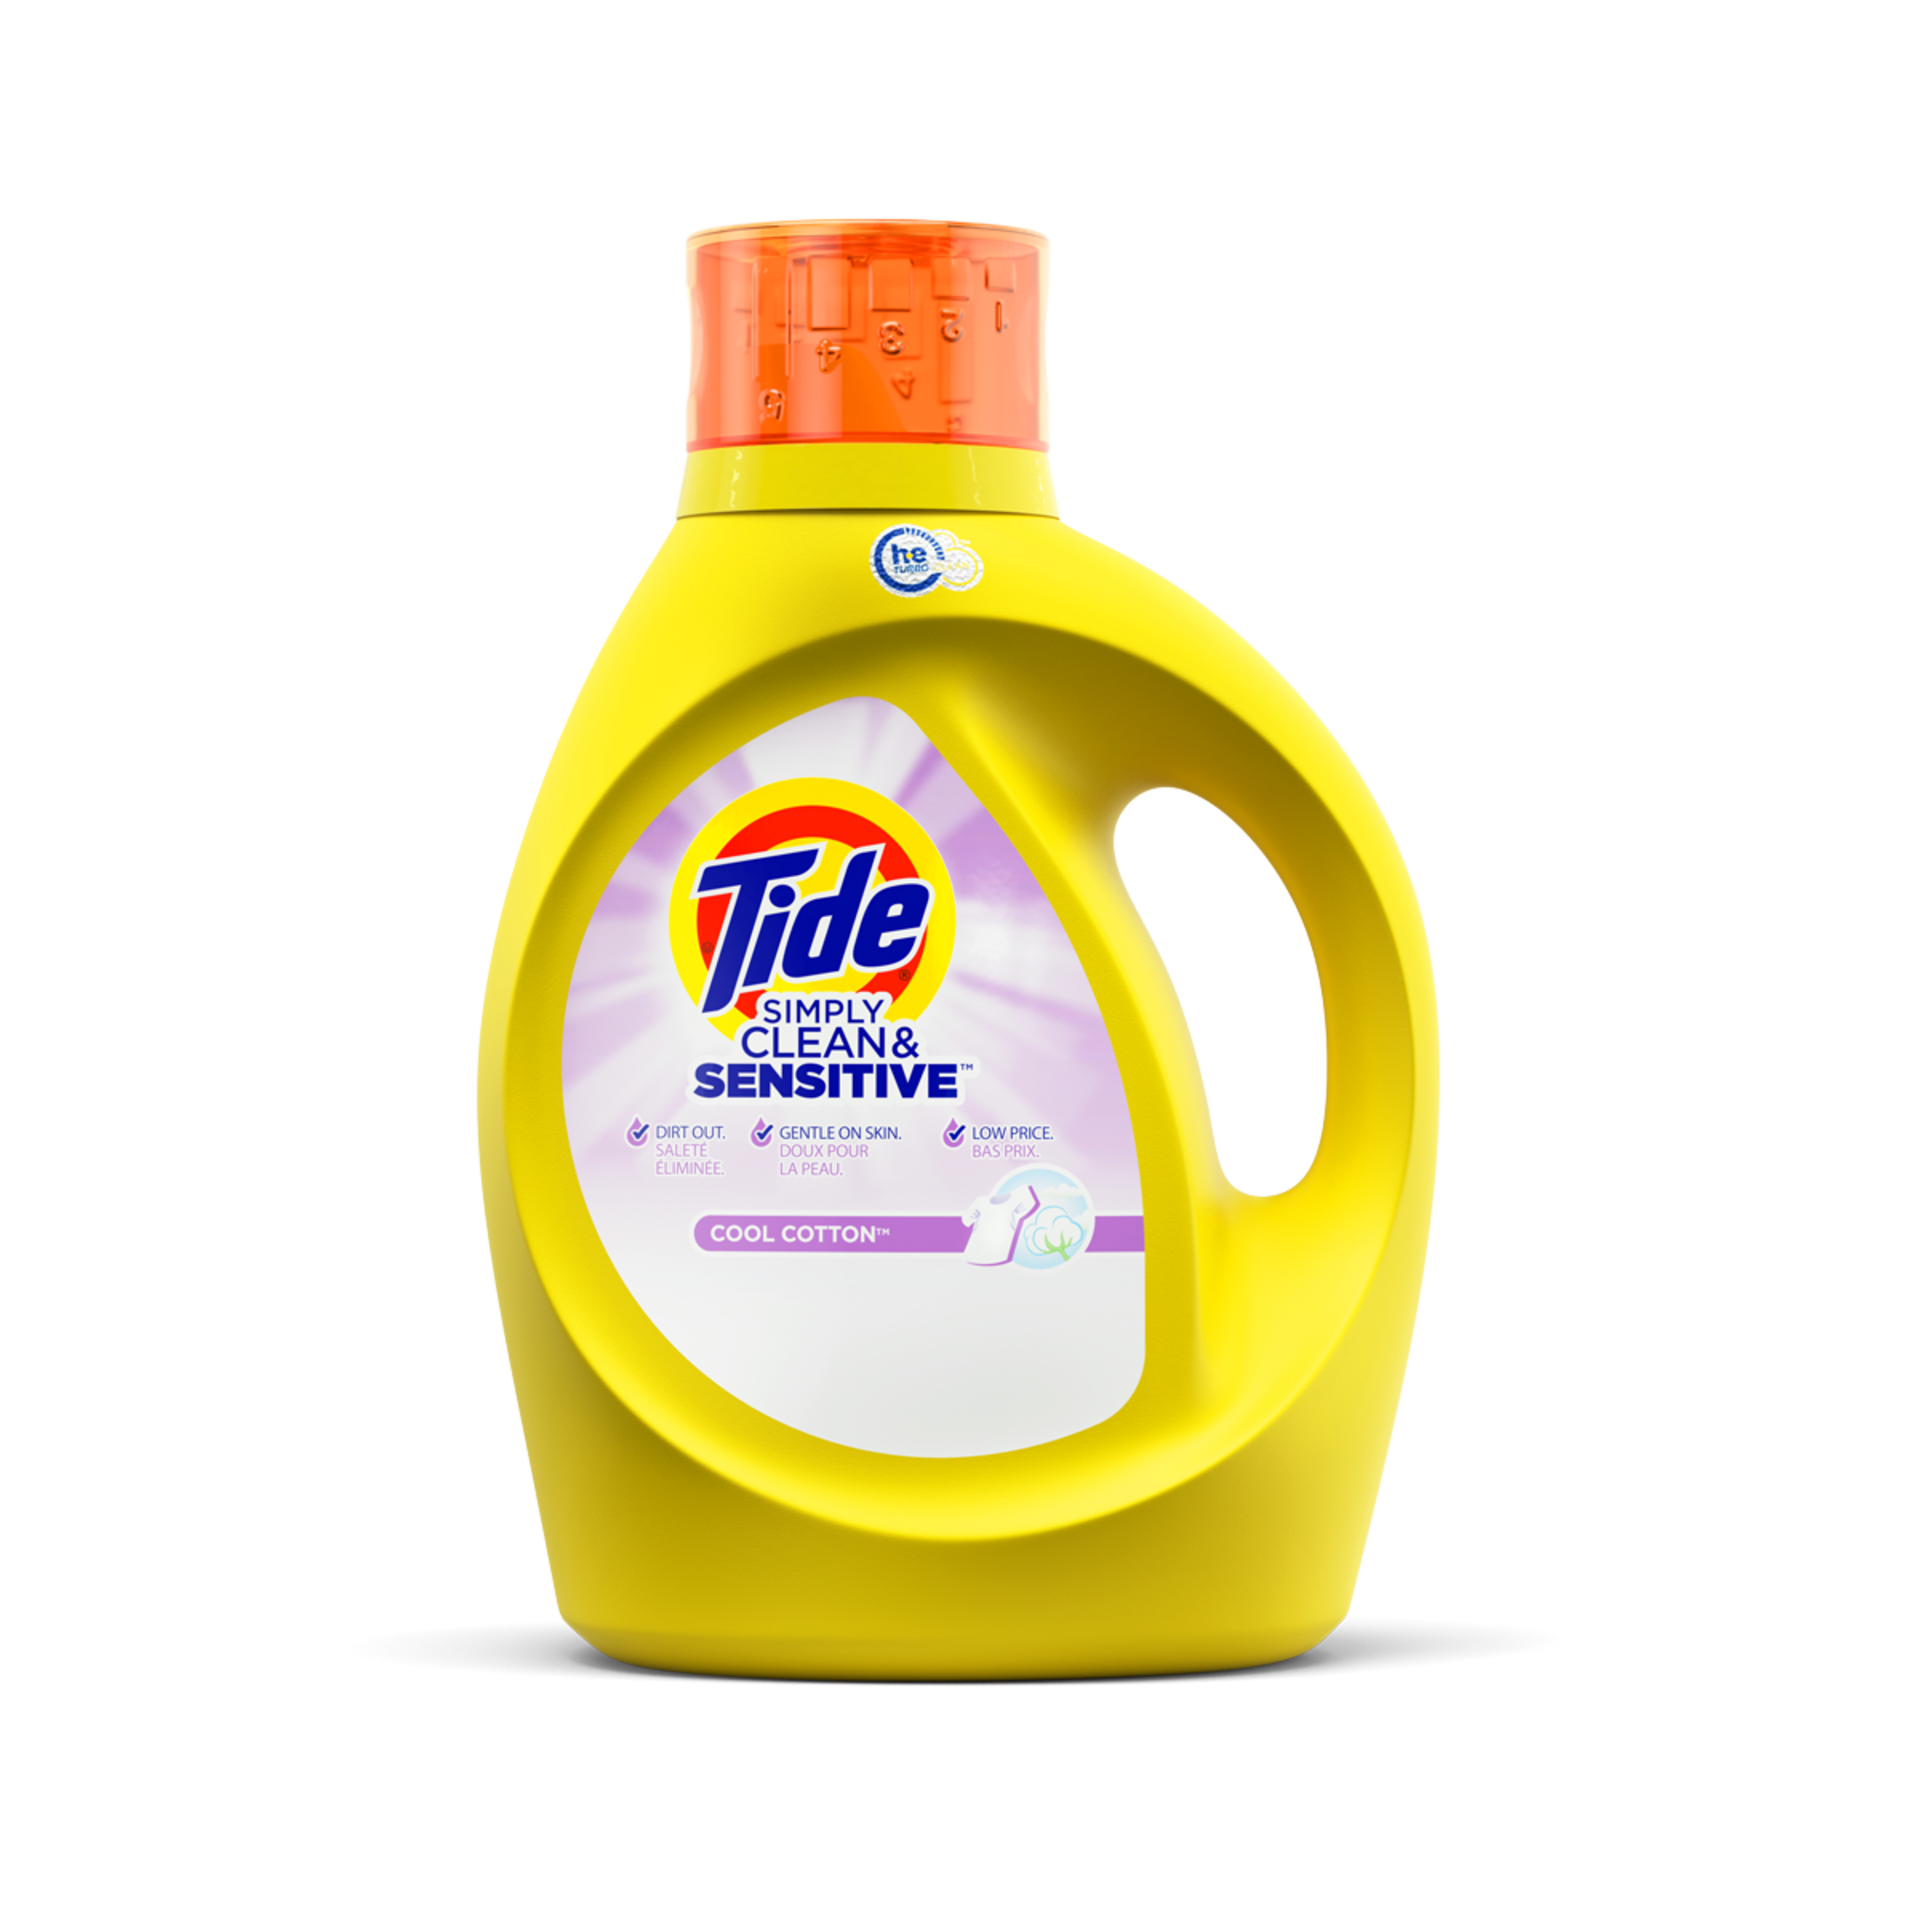 Tide Simply Clean and Sensitive Liquid Laundry Detergent